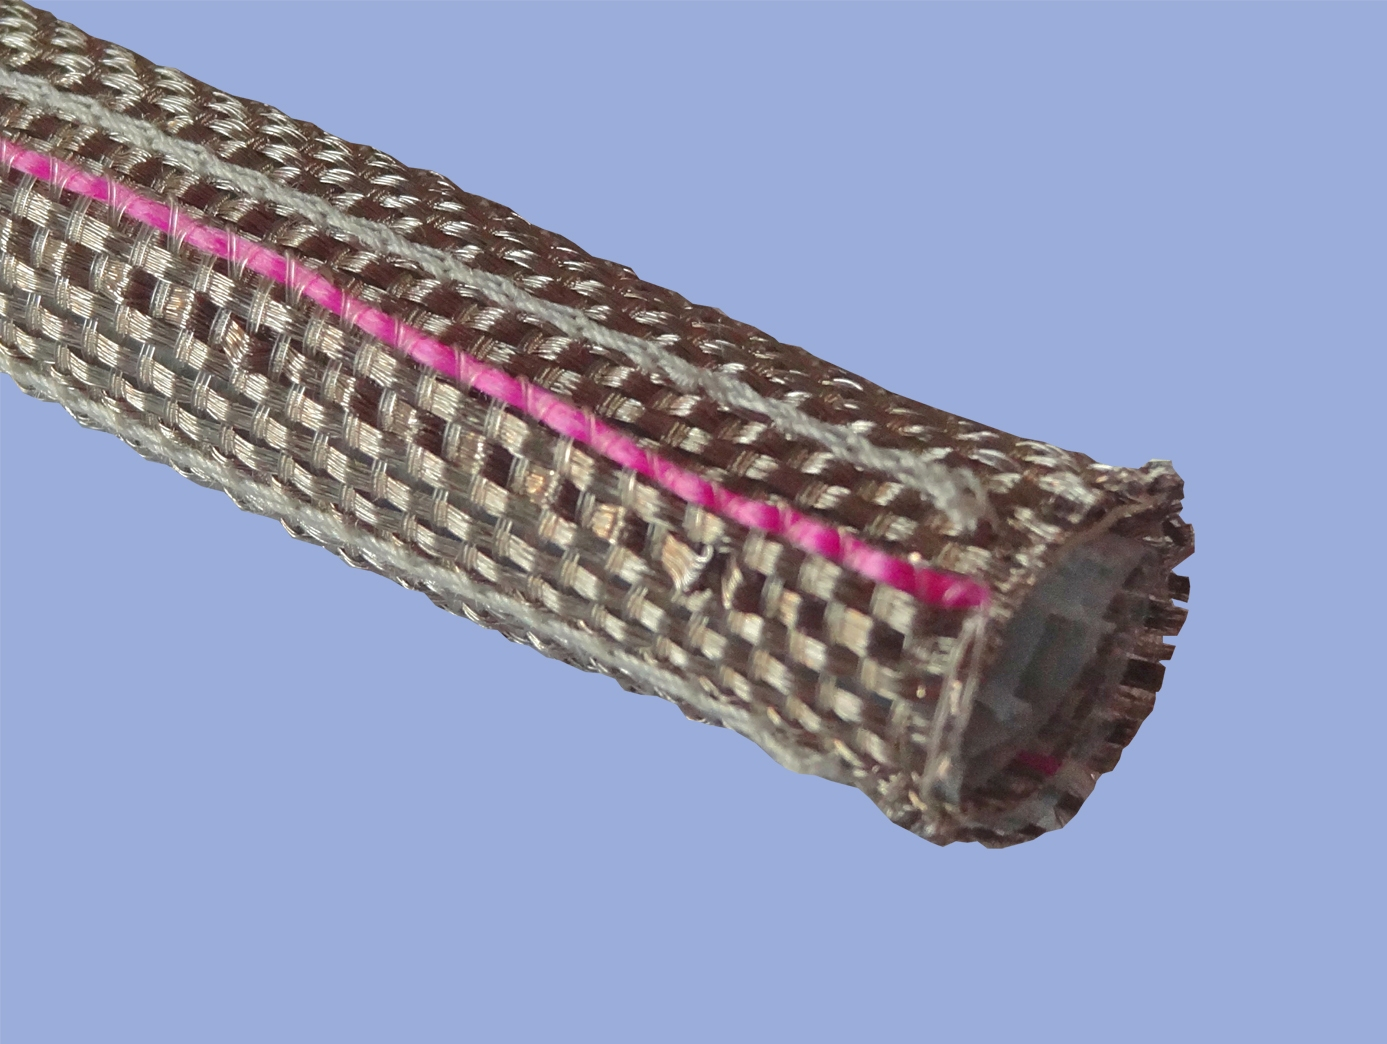 RFI sleeving for aerospace cabling also provides environmental protection